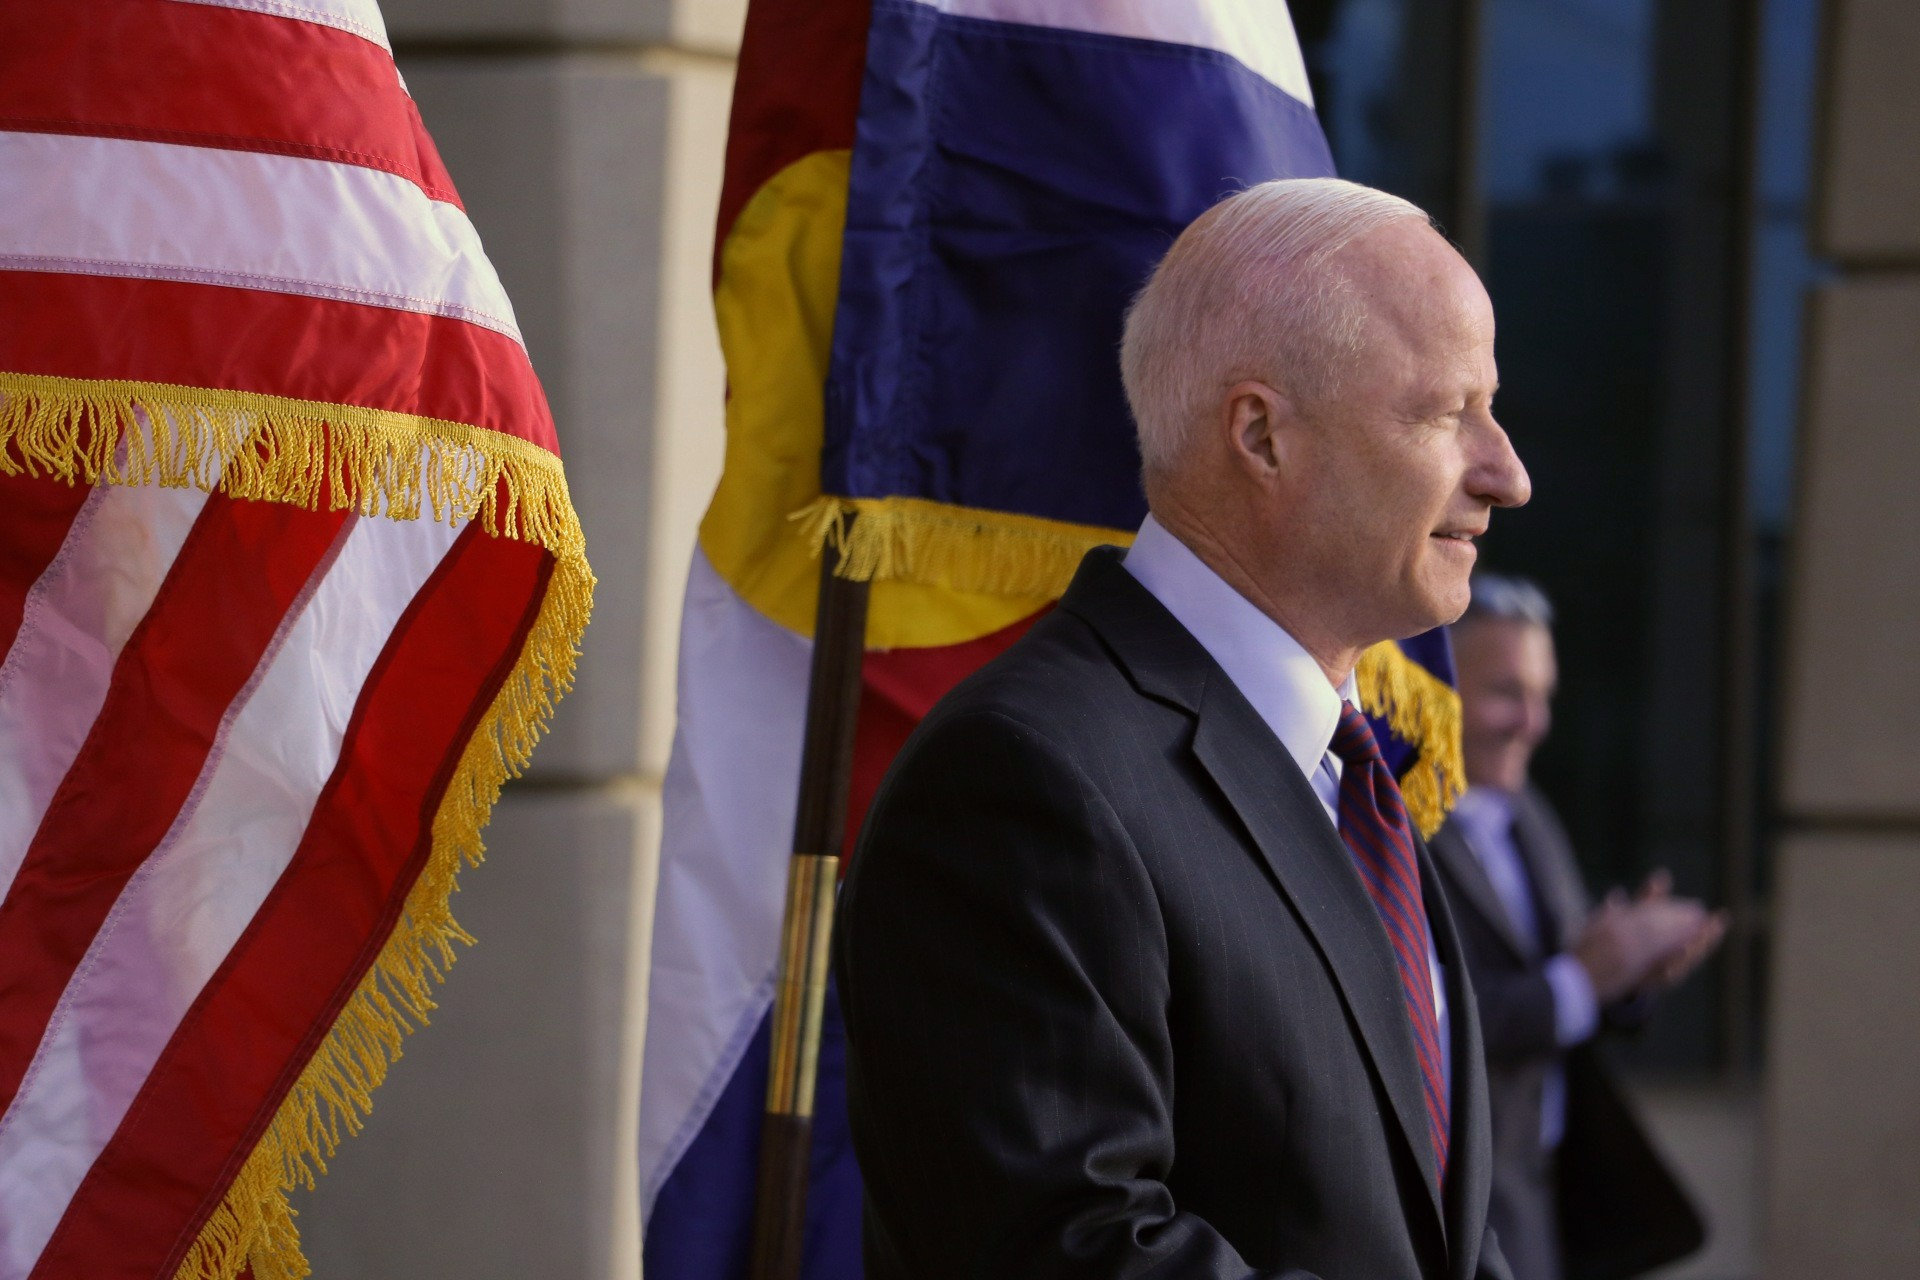 Former Rep. Mike Coffman declares victory in Aurora mayoral race on Thursday, Nov. 14, 2019.